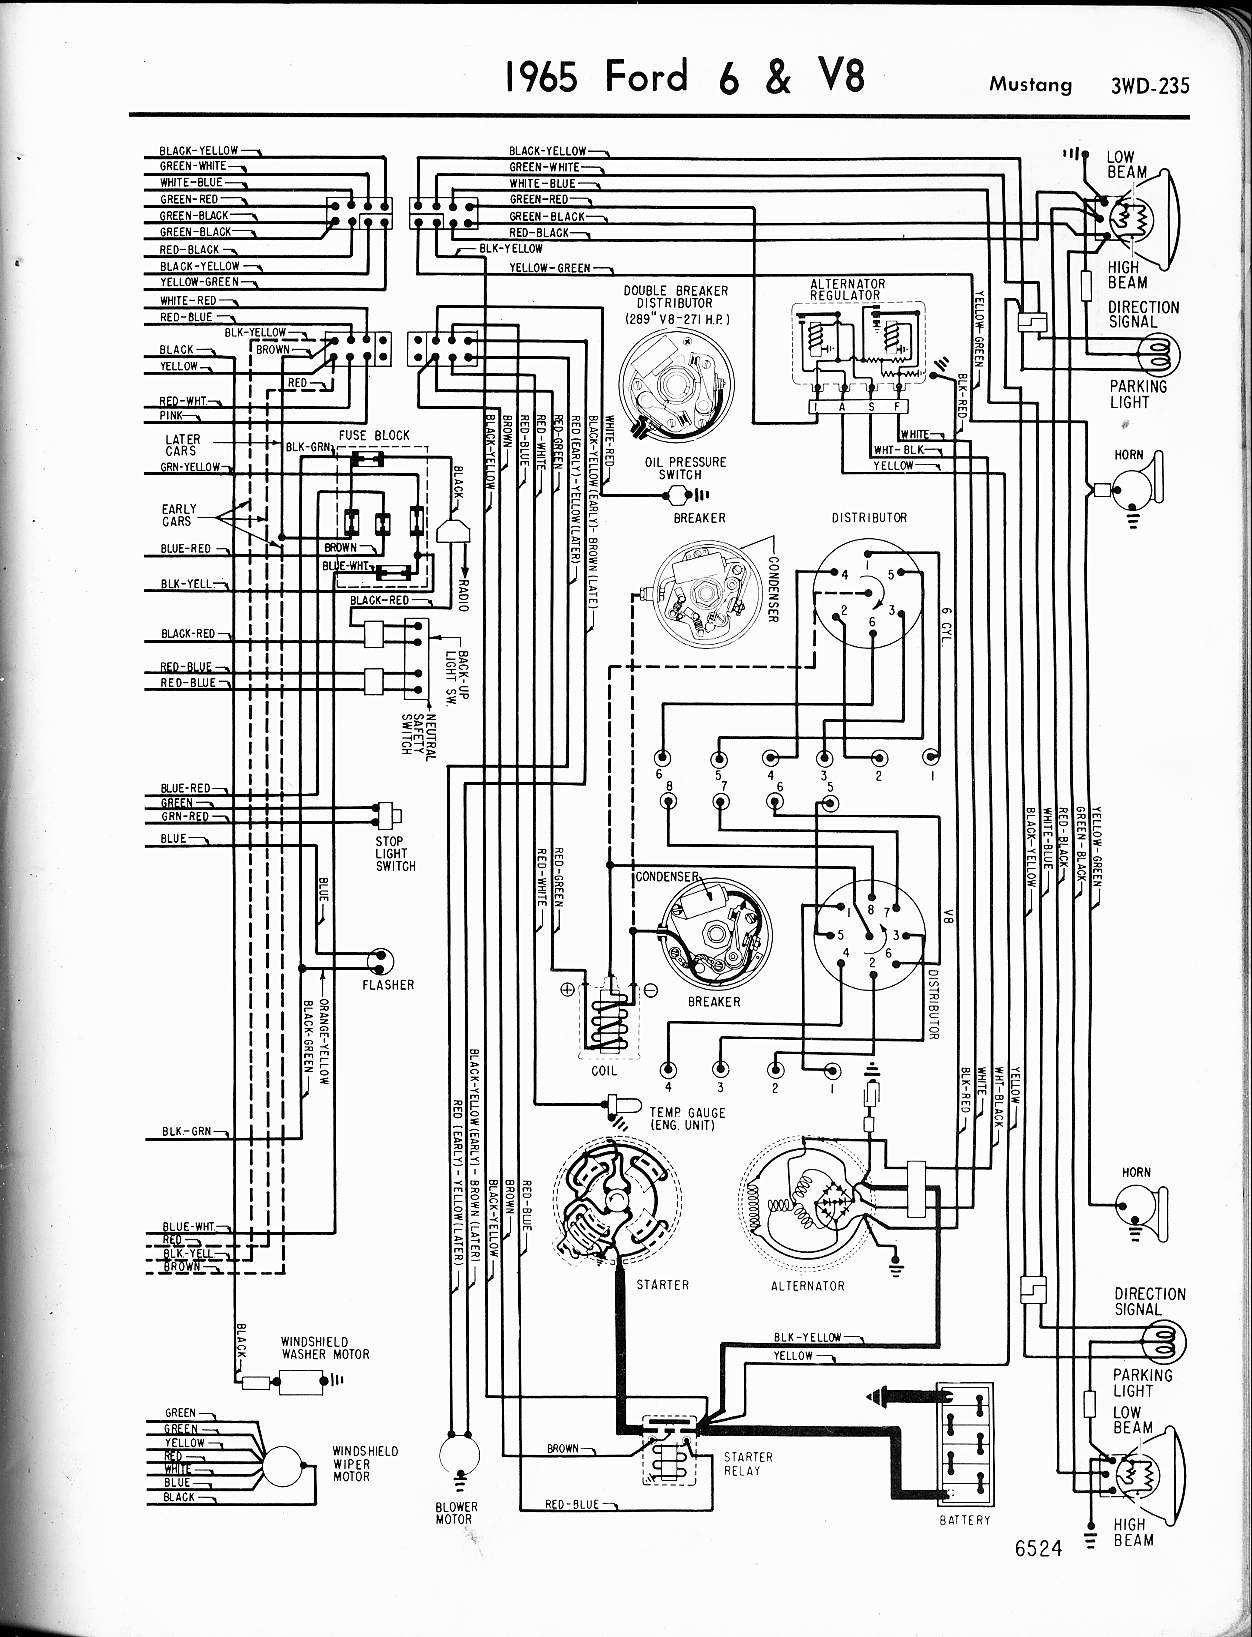 Ford Diagrams Distributor Wire Diagram 7 65 Mustang Wiring 2 Drawing B